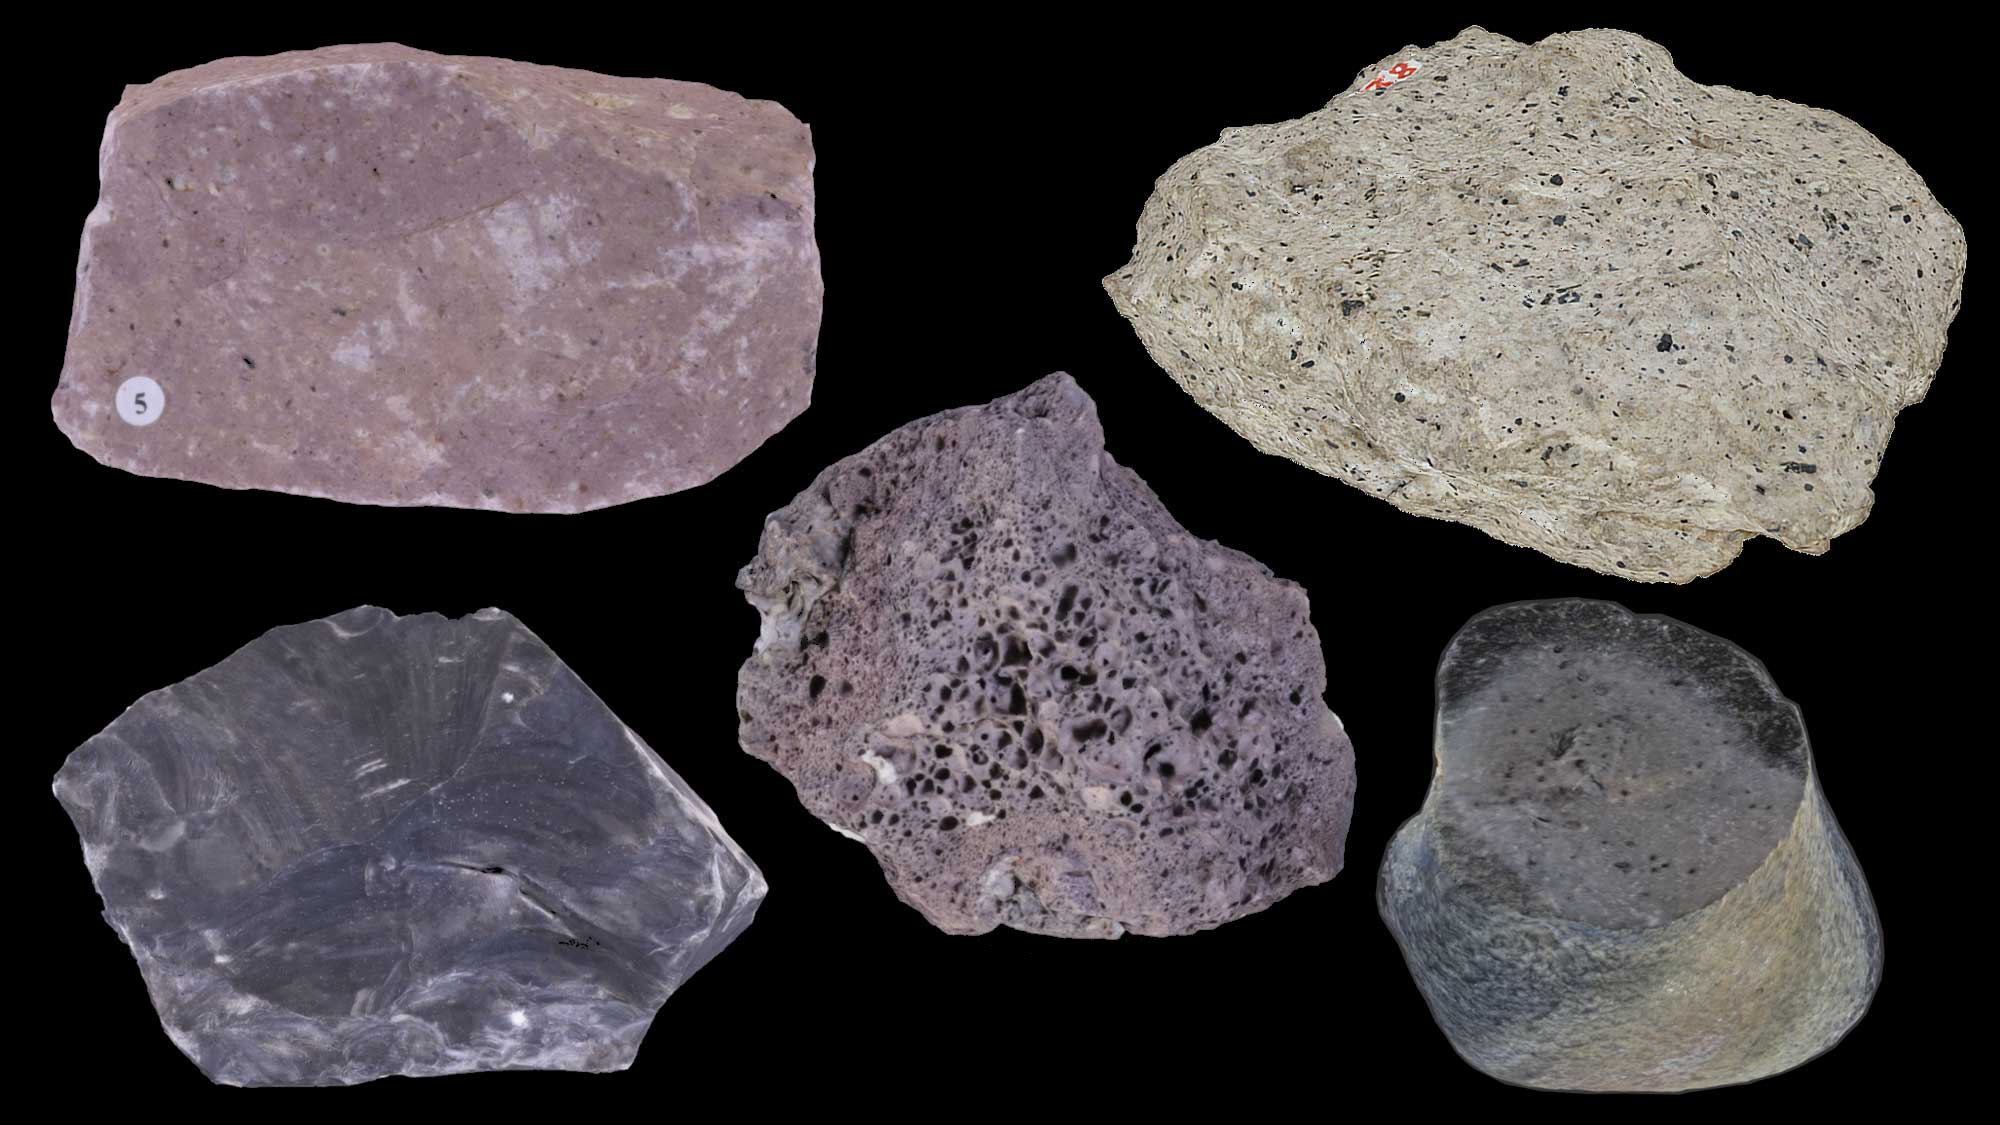 Image of various types of extrusive igneous rocks.